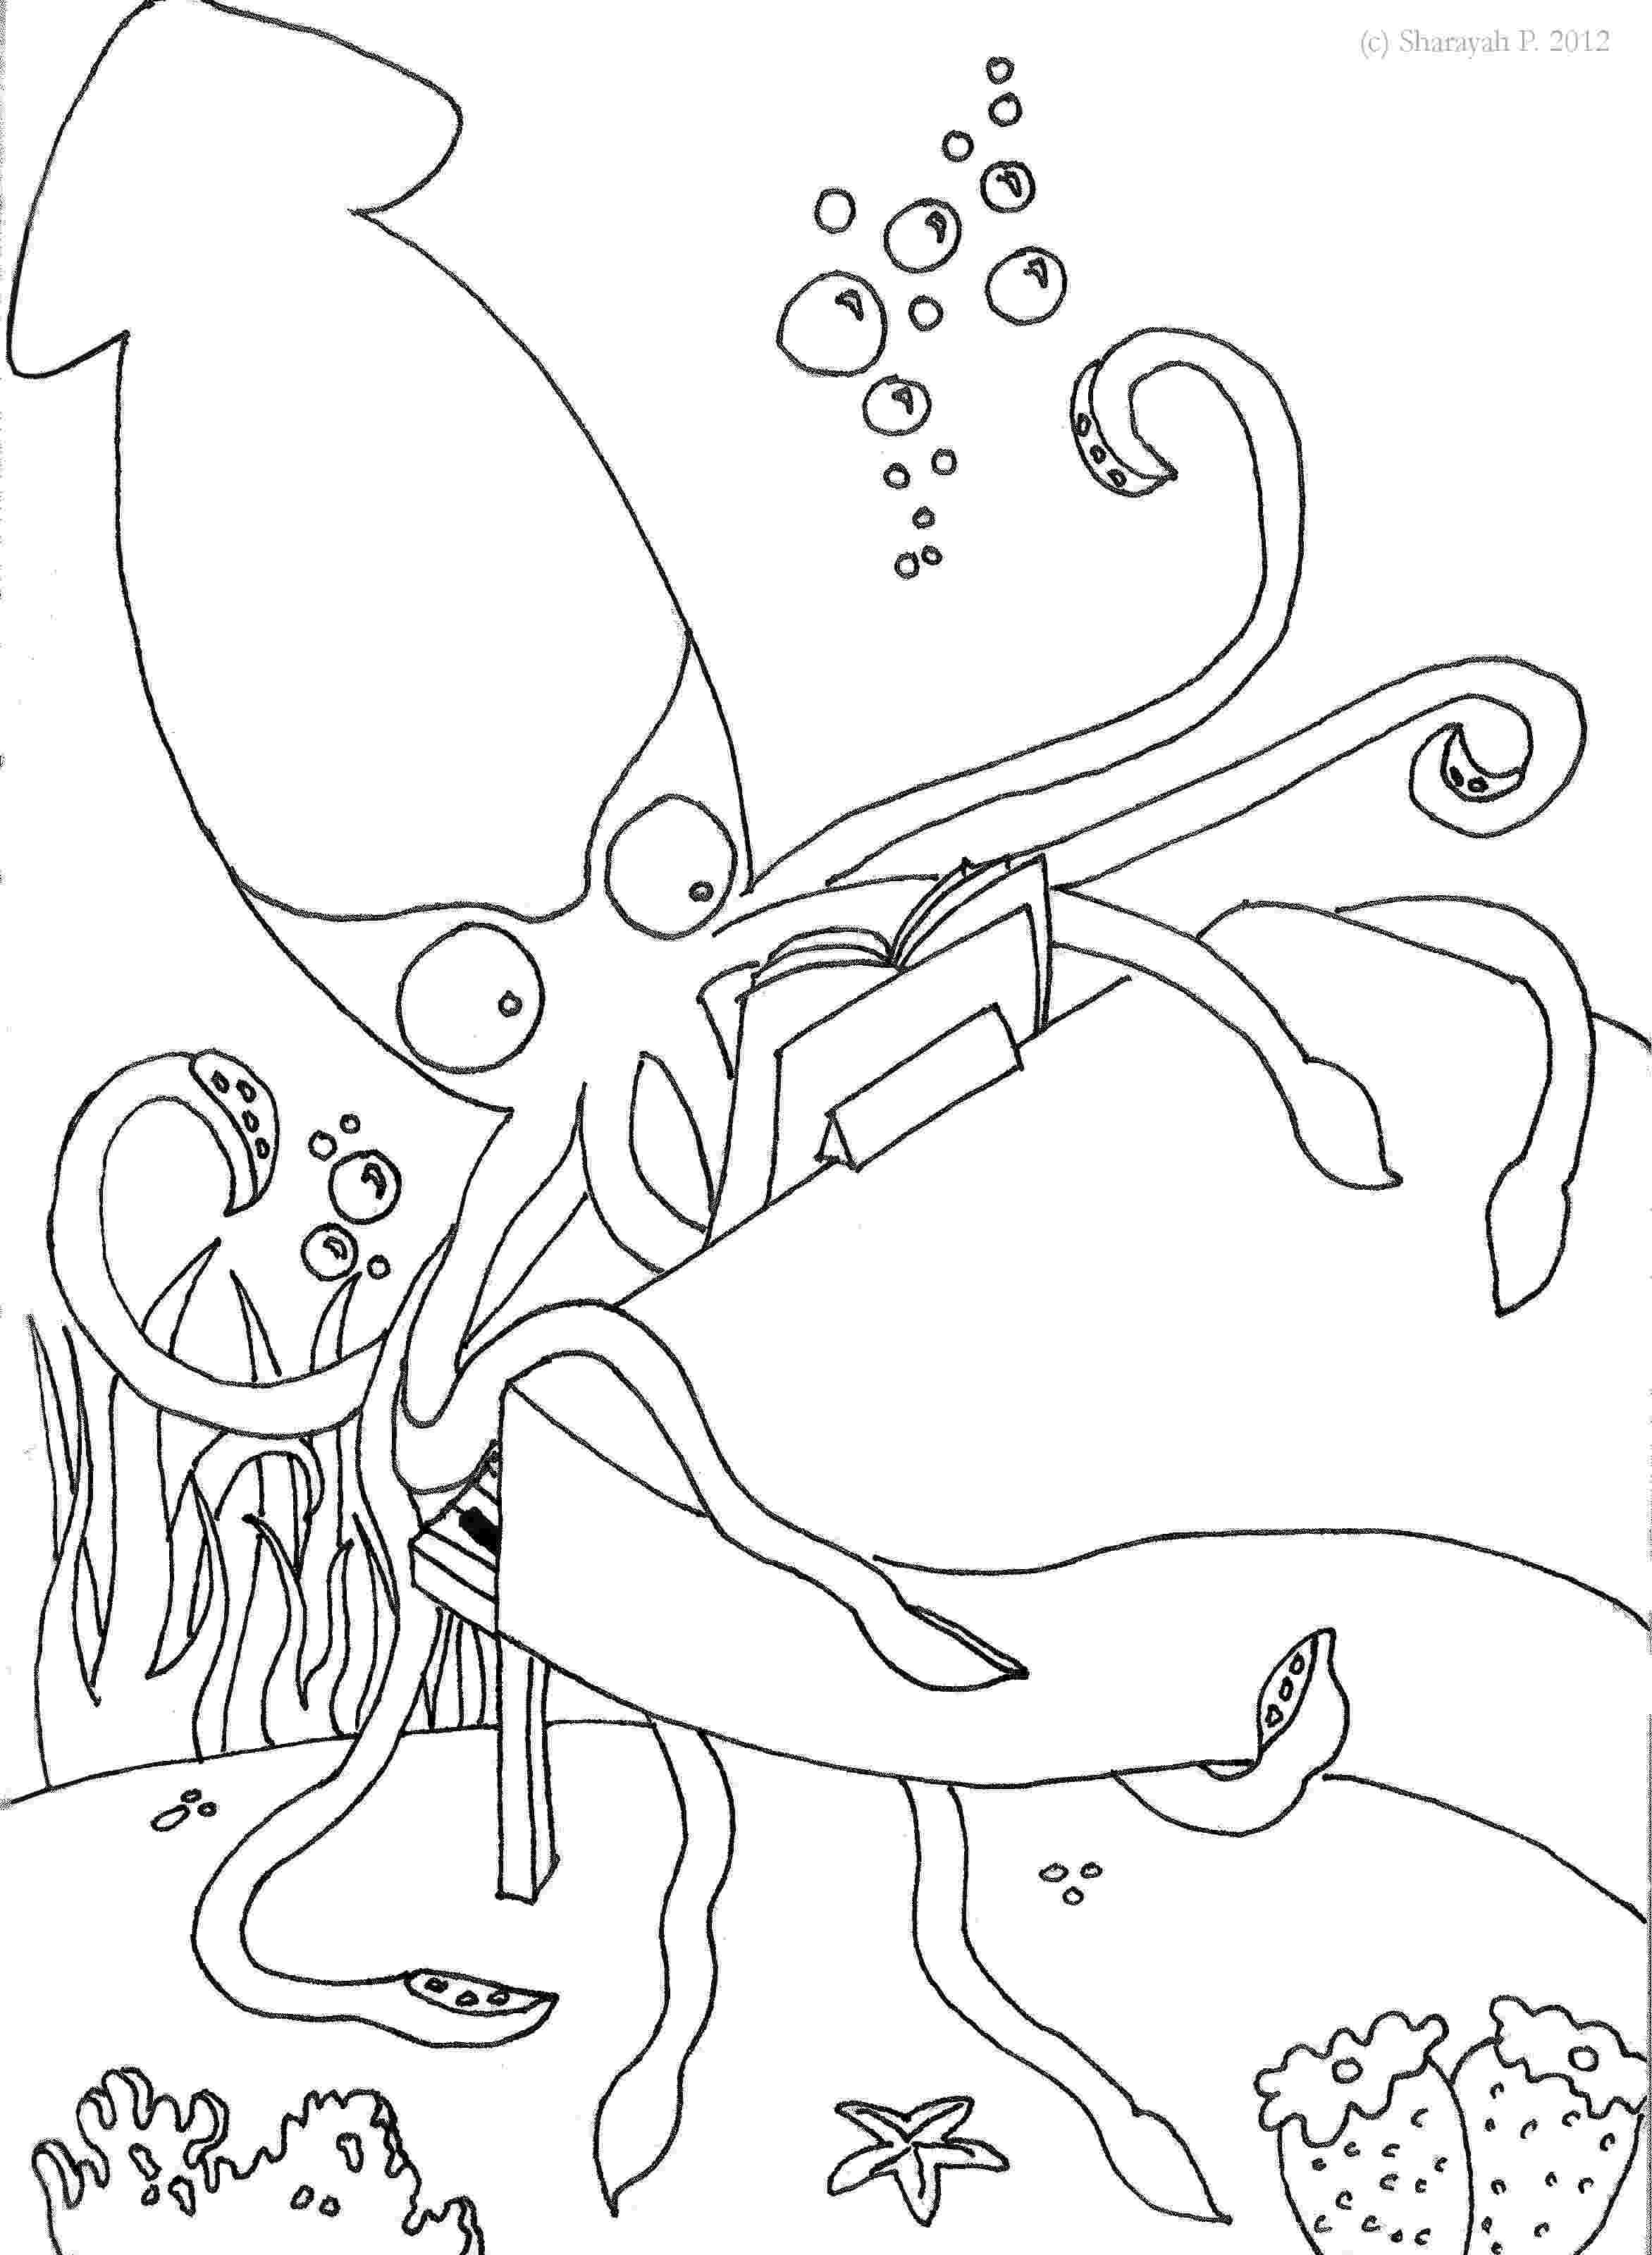 giant squid coloring page trendy design giant squid coloring page color pages squid page coloring giant